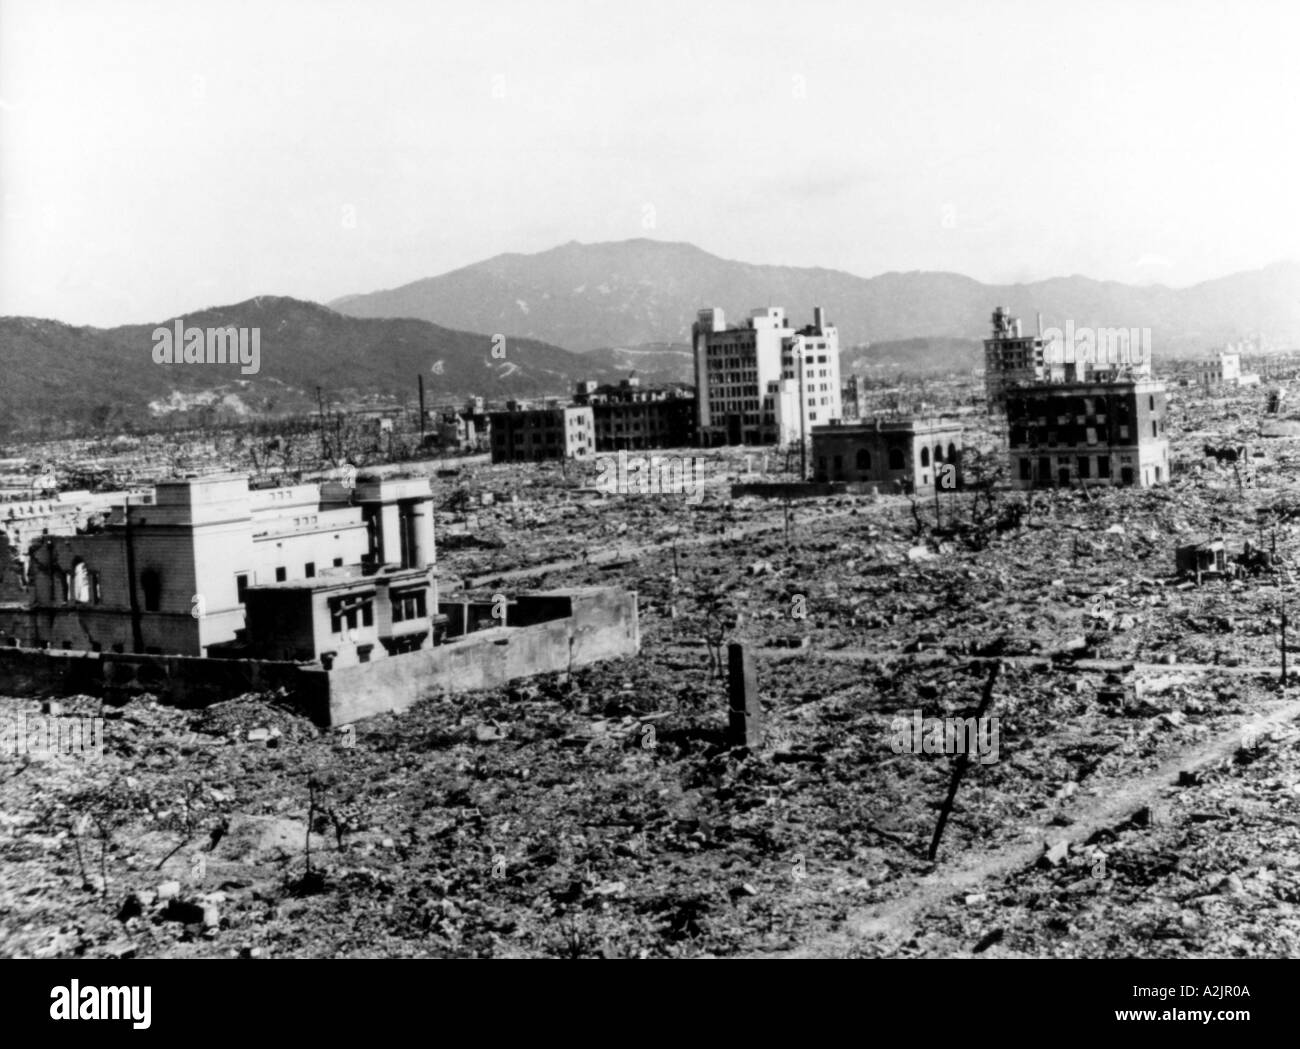 the devastation in the city of hiroshima after the atomic bombing in 1945 Aerial views of the city of hiroshima before and after the atomic bomb was dropped national archives an aerial view of hiroshima showing the devastation caused by a single atomic bomb getty.